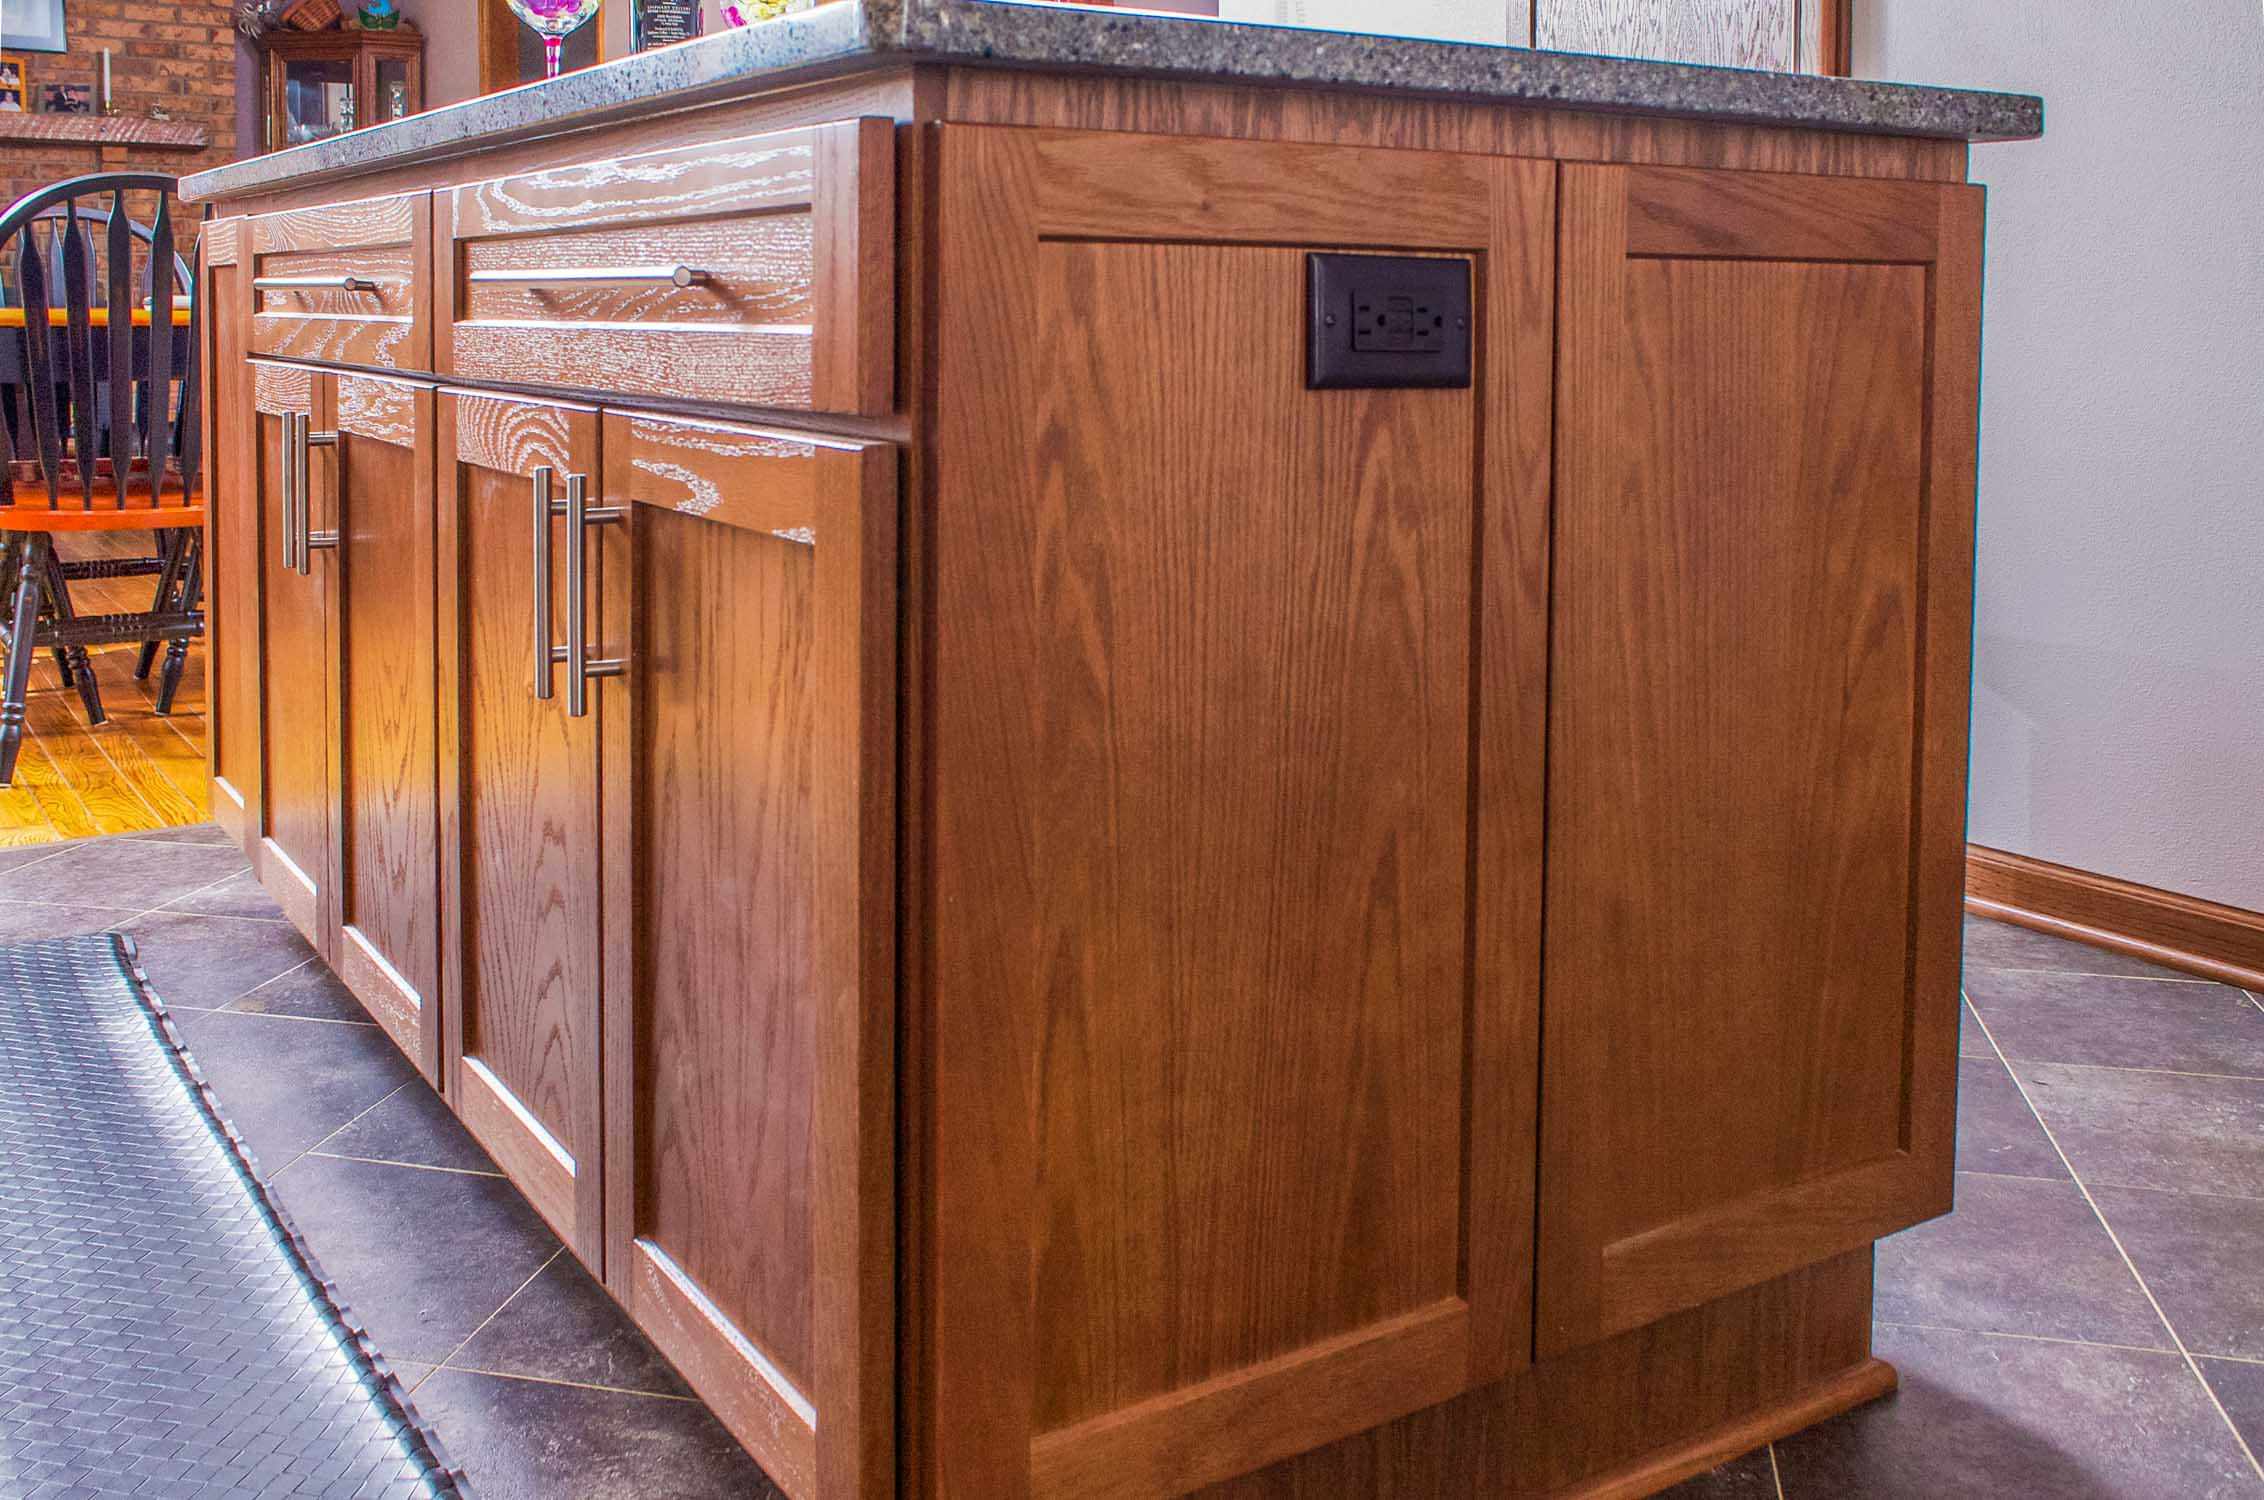 Linear Bar Pulls - Bar pulls provide a sleek and contemporary fair to this transitional kitchen remodel in DeForest, Wisconsin.